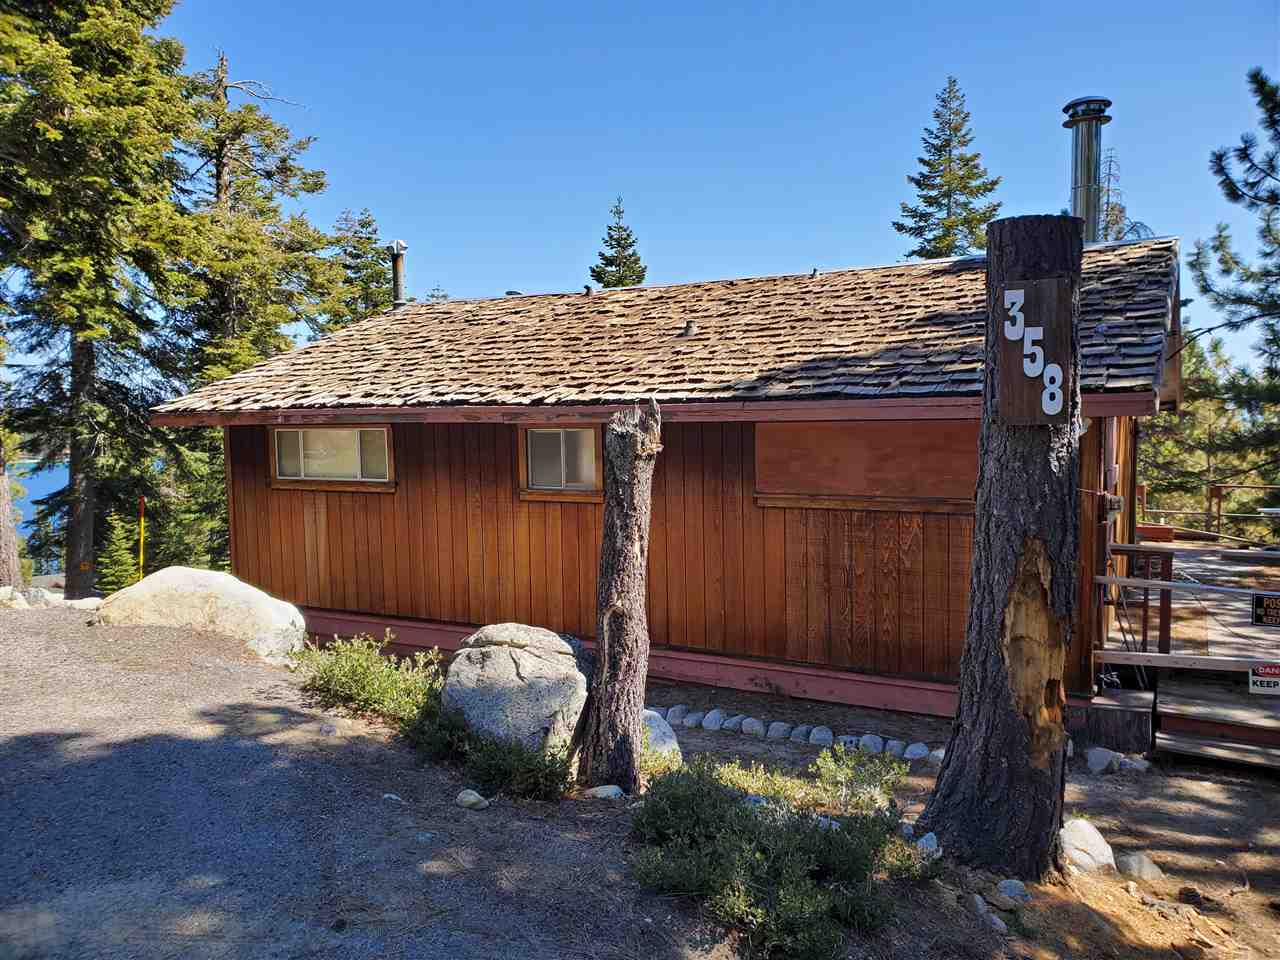 Image for 358 Bayview Drive, South Lake Tahoe, CA 96150